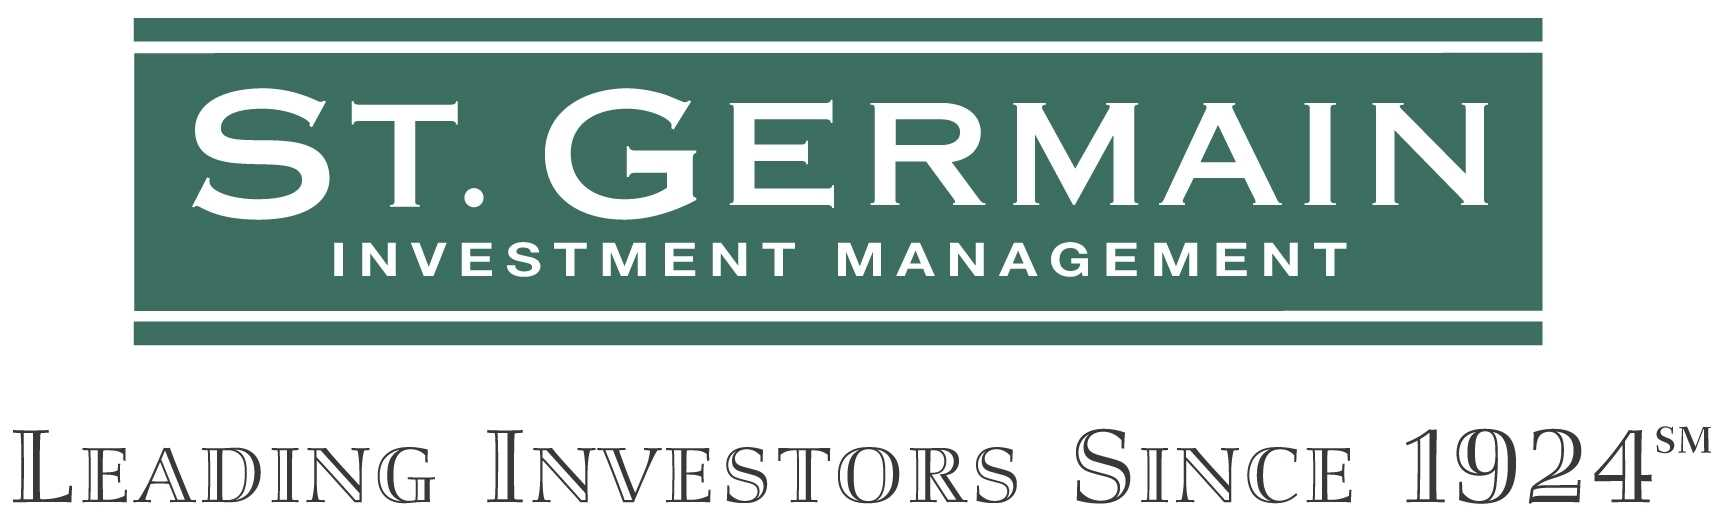 St. Germain Investment Management